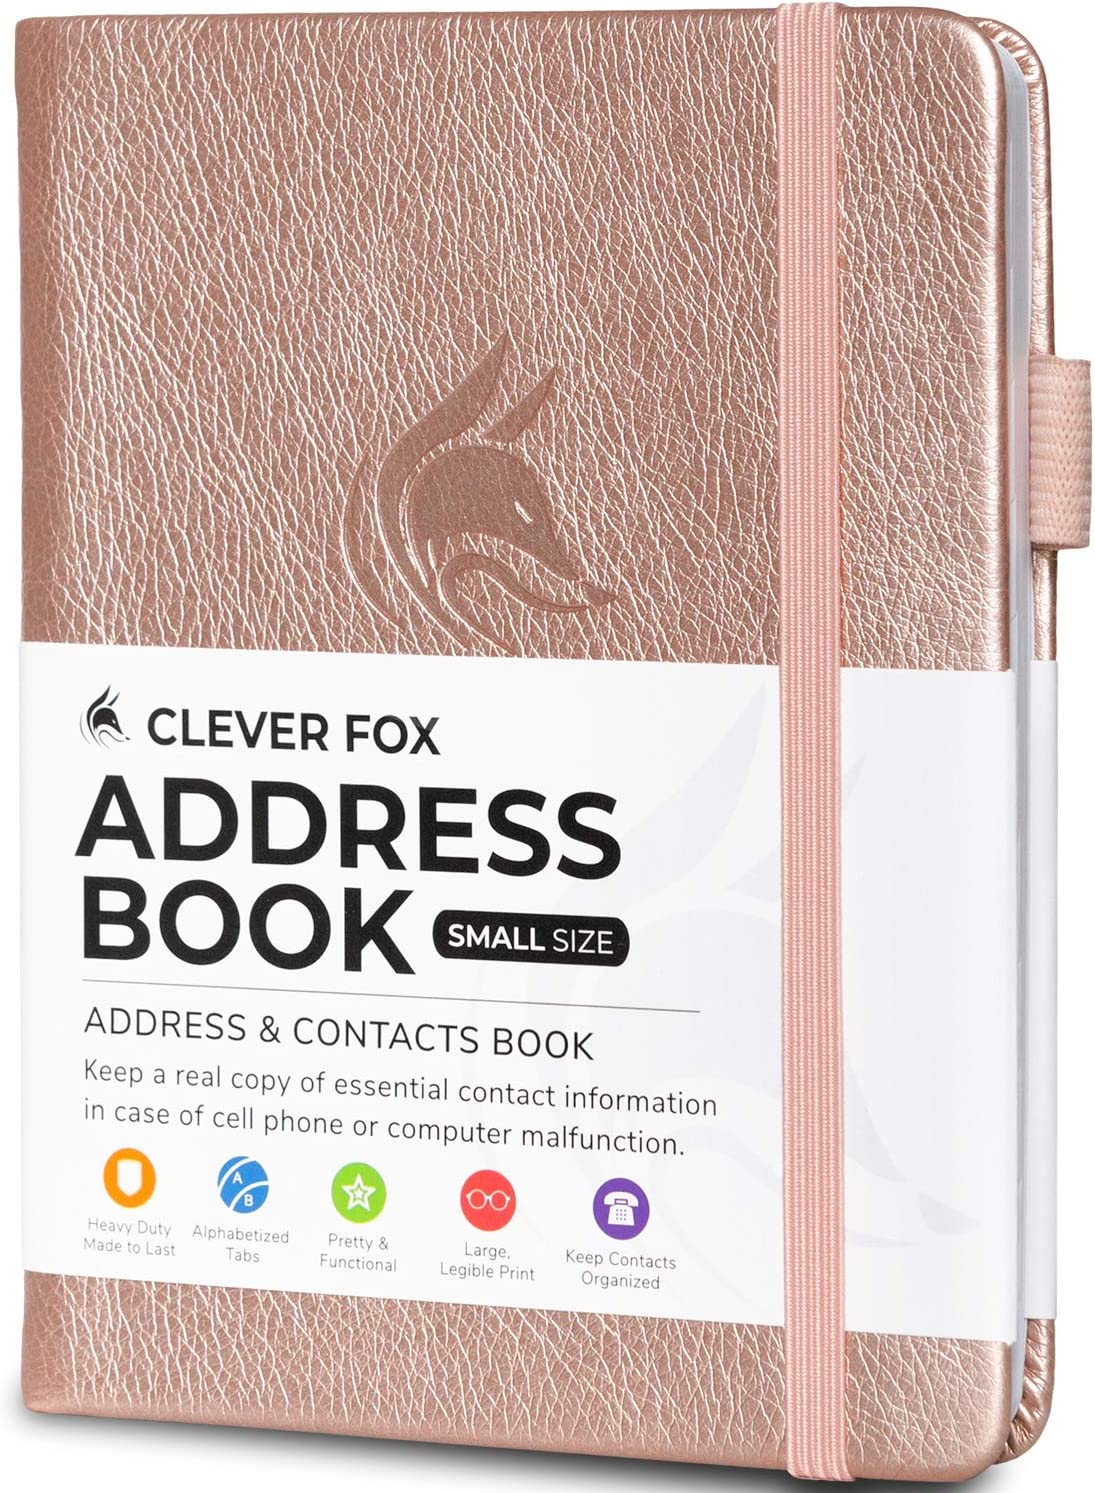 Rose Gold Contact Organizer Journal Hardcover Pocket Sized 4.0x5.5 PU Leather Telephone and Address Book for Keeping Contacts Safe Clever Fox Address Book with alphabetic tabs